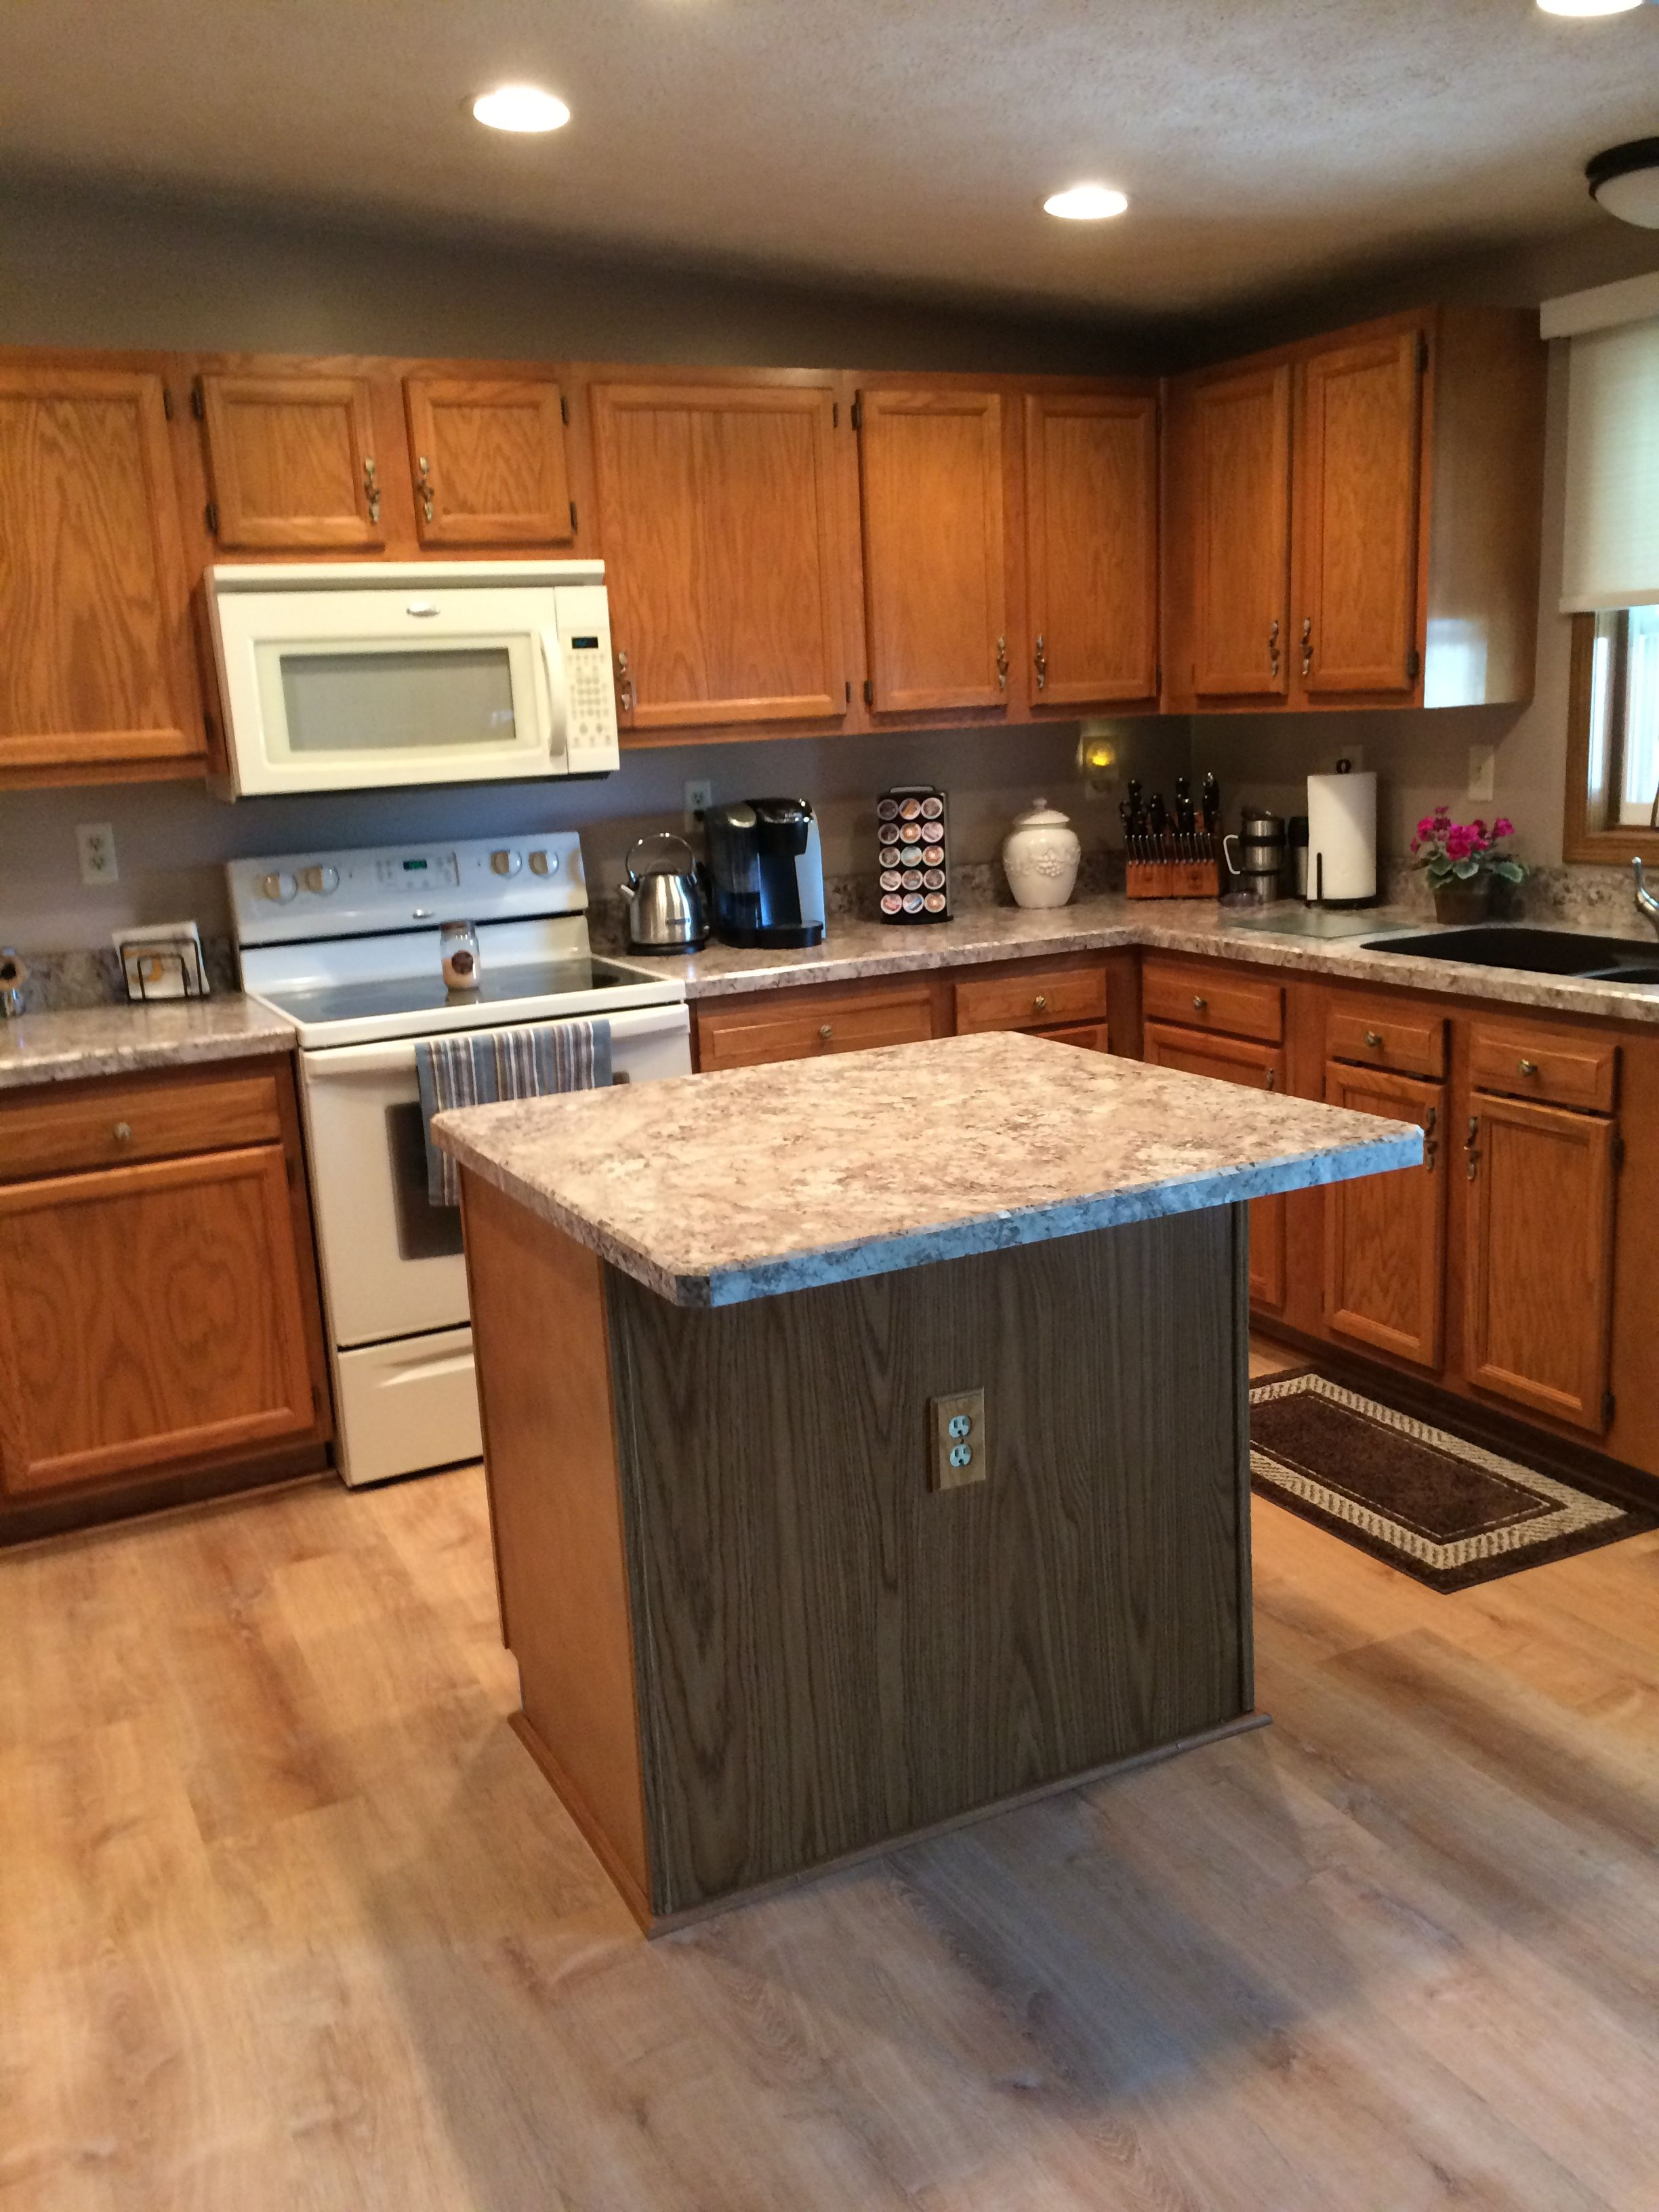 Old Style Kitchen With A Facelift Wilsonart Laminate Autumn Carnival Counters With Under Mount Sink And Al Luxury Vinyl Plank Kitchen Styling Kitchen Design